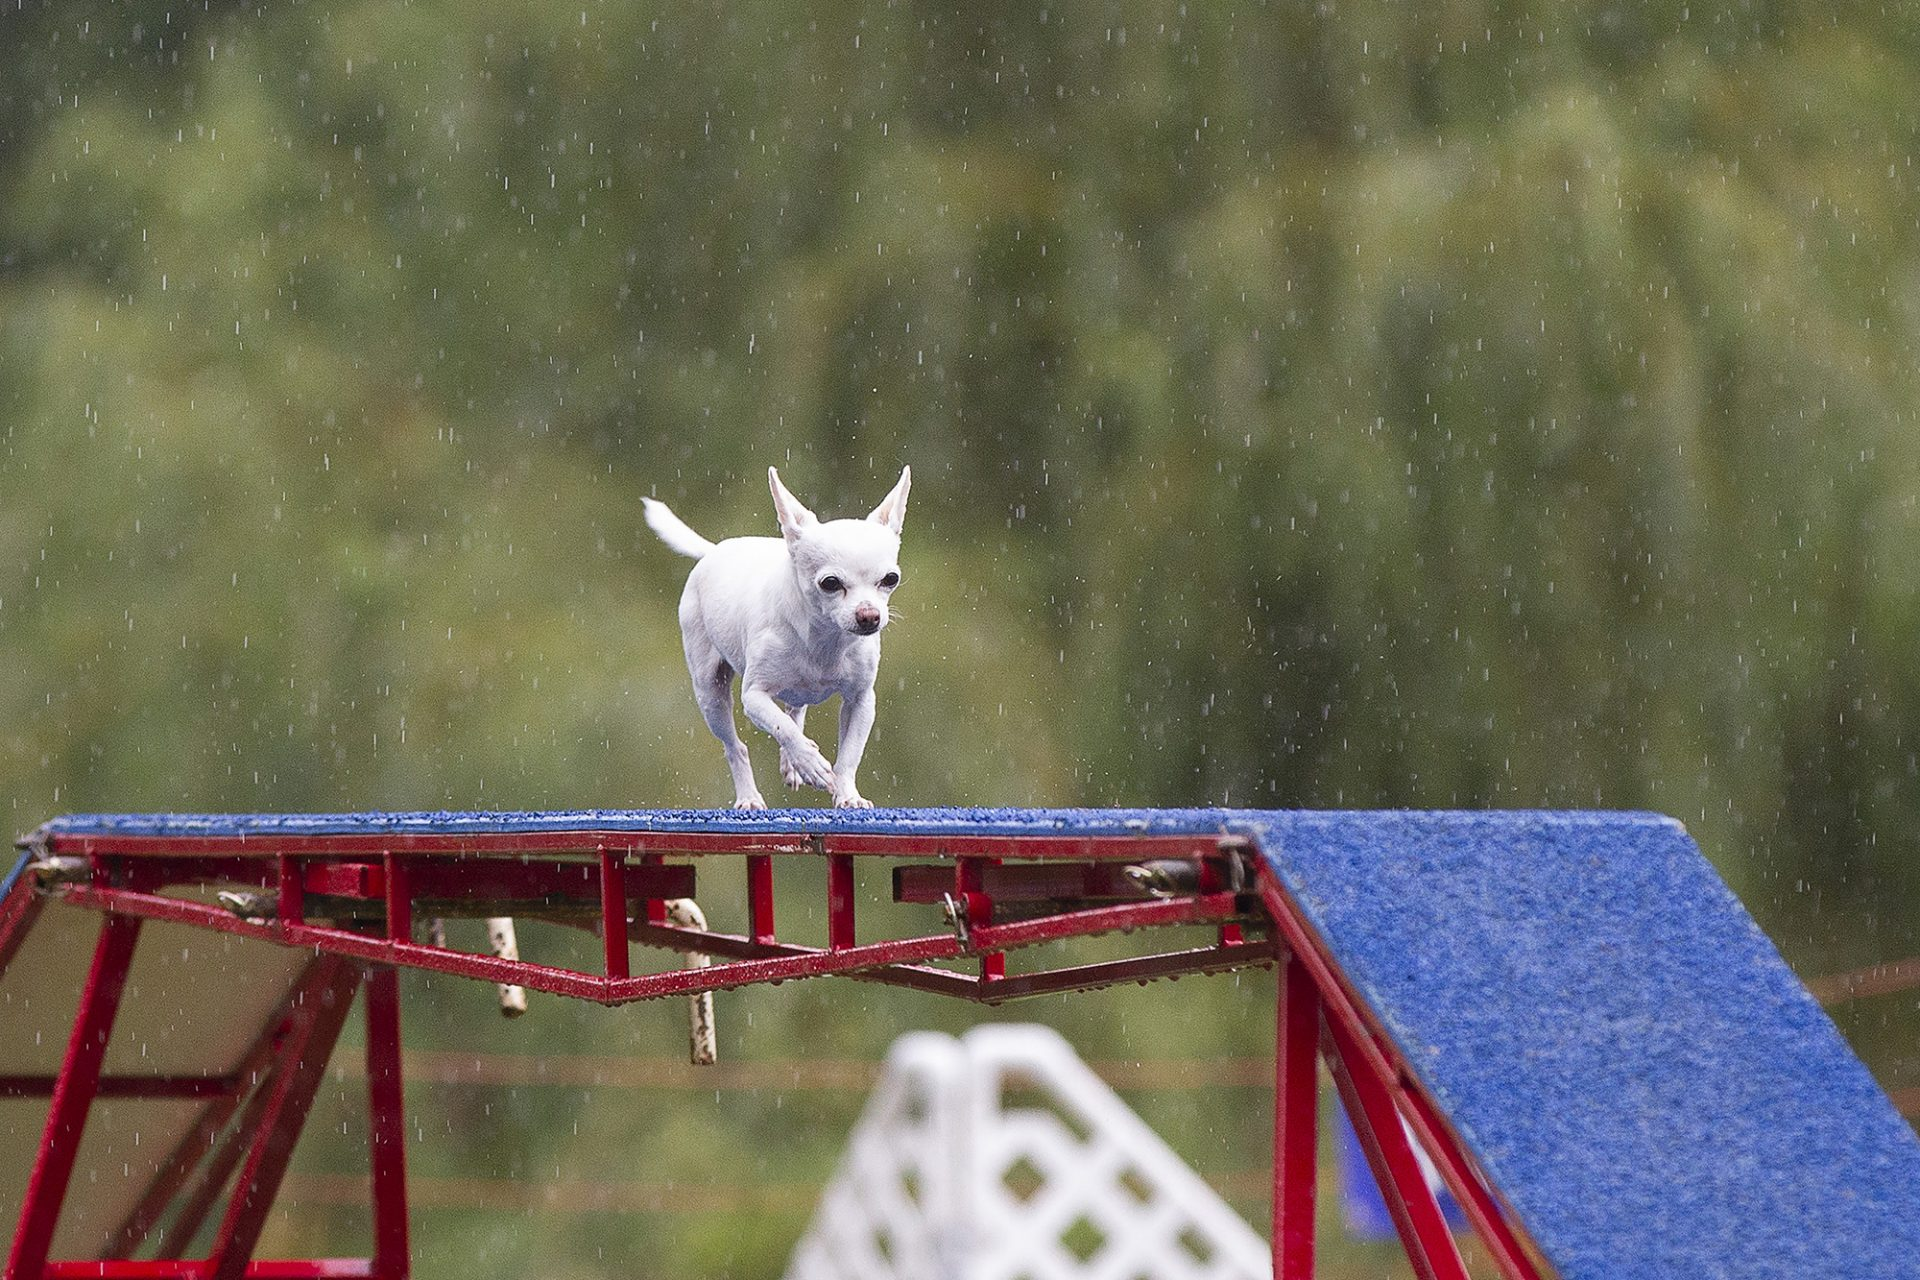 tiny chihuahua in pouring rain on dogwalk in dog agility